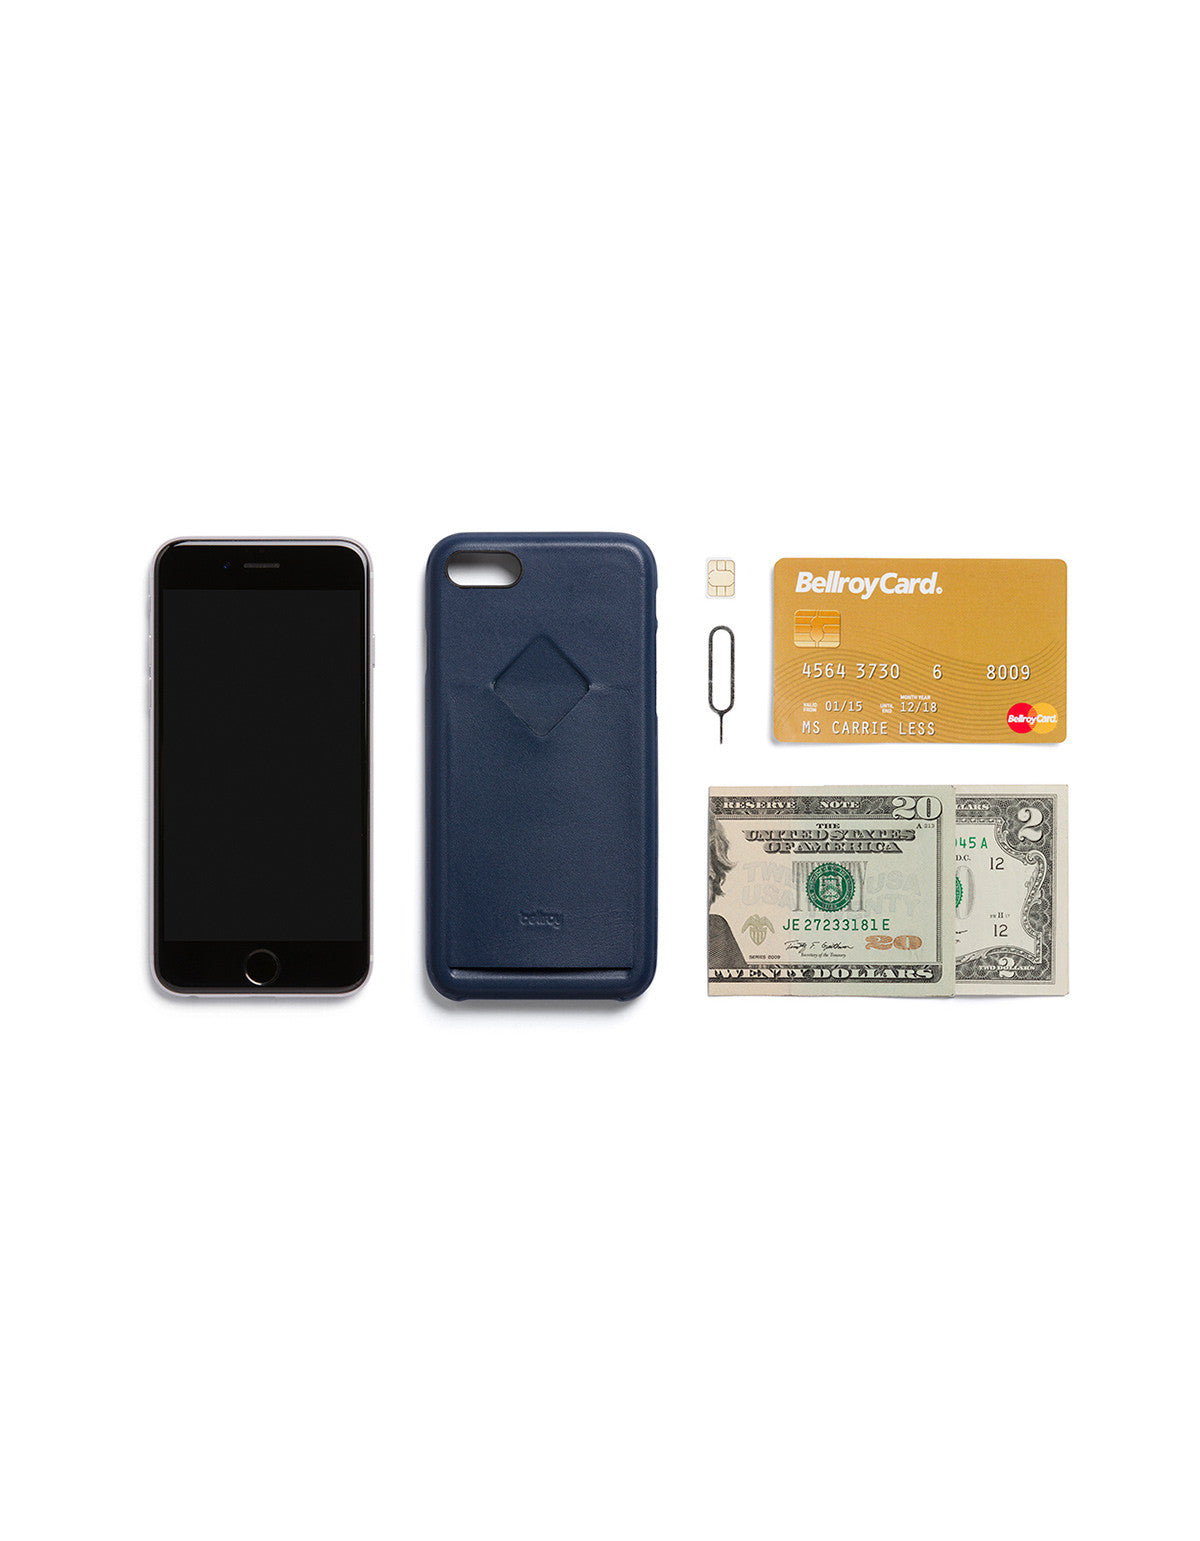 Bellroy Phone Case i7 1 Card Blue Steel - Still Life - 5